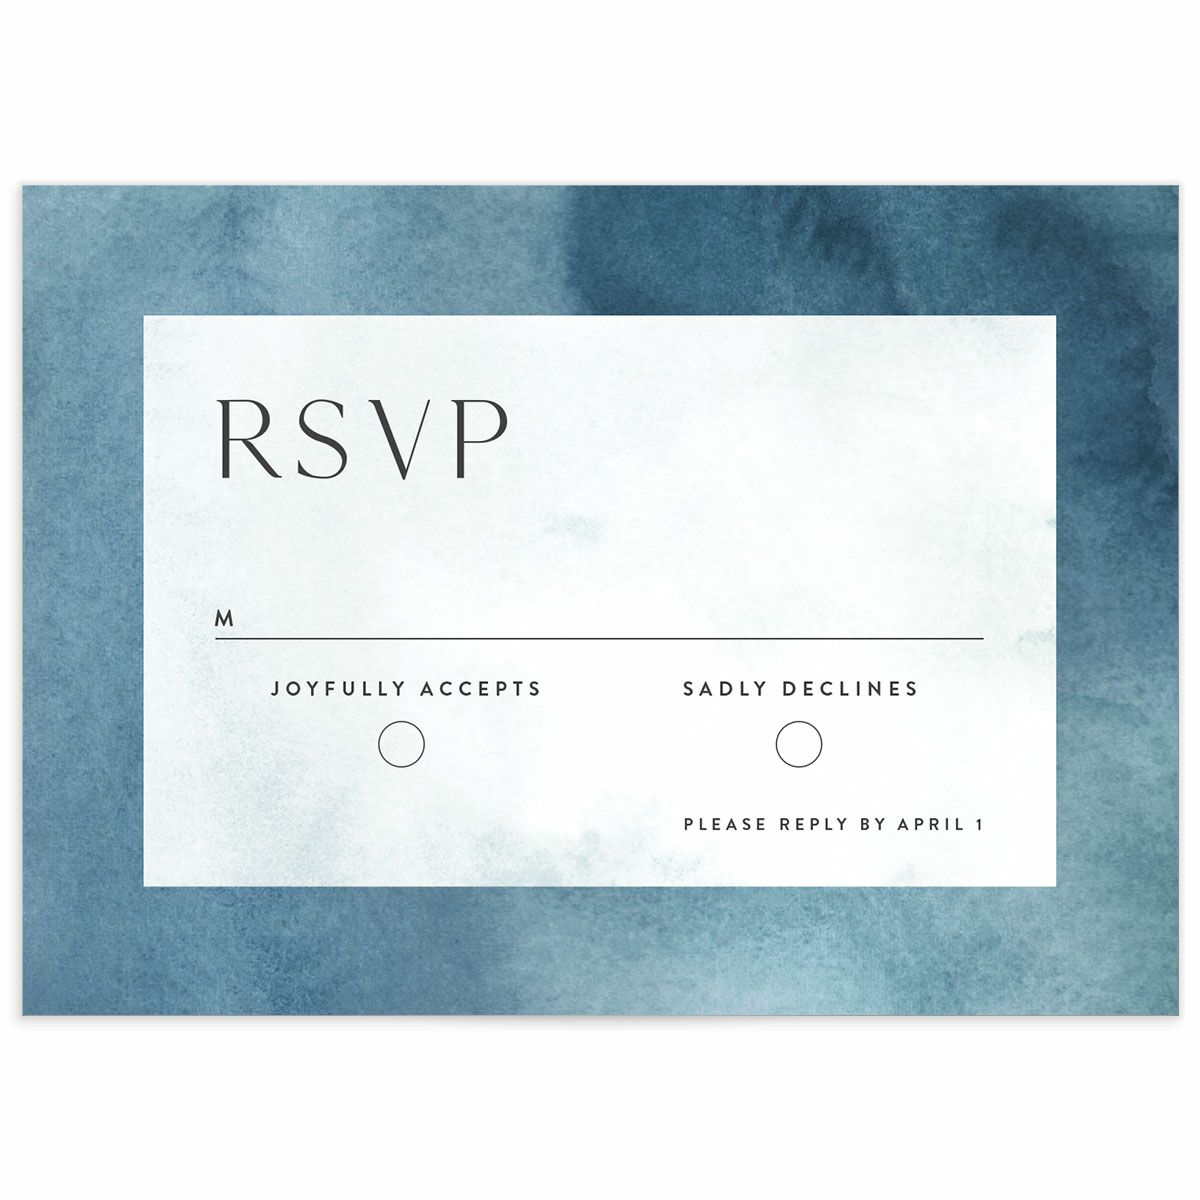 A Wedding Response Card from the Elegant Ethereal Collection